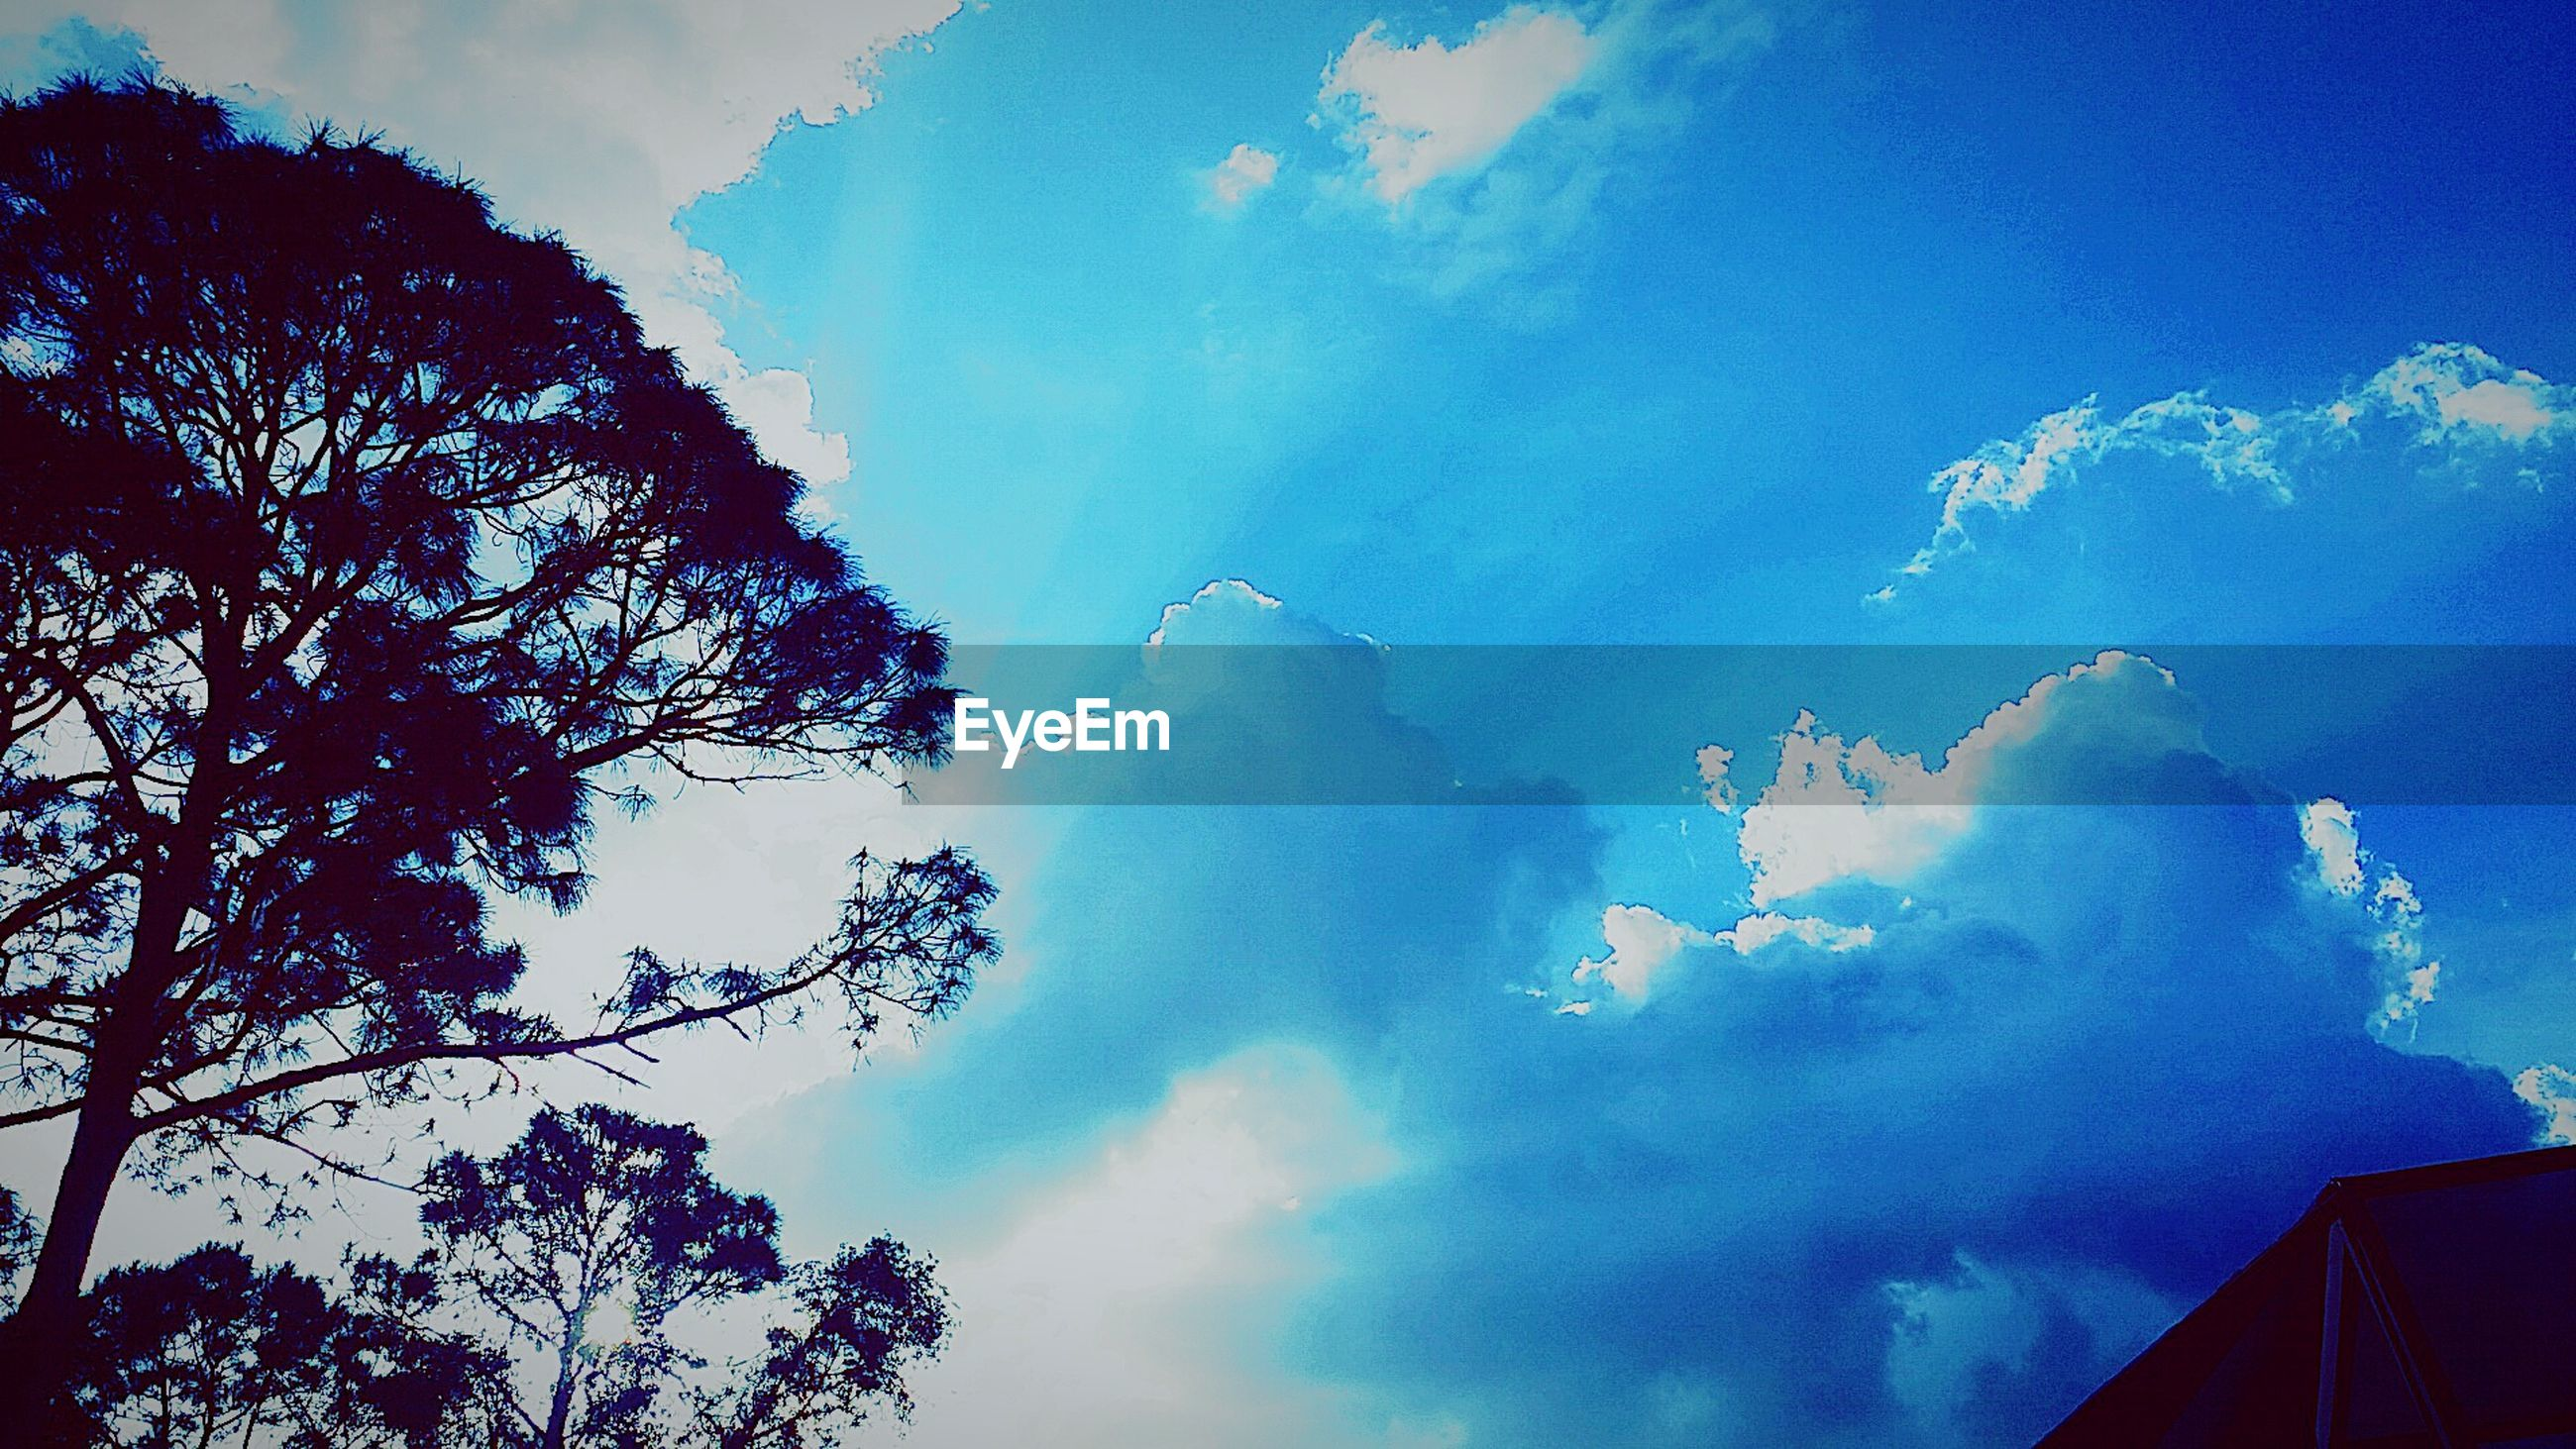 sky, low angle view, tree, cloud - sky, beauty in nature, cloudy, blue, nature, silhouette, cloud, scenics, built structure, building exterior, weather, tranquility, architecture, outdoors, high section, no people, day